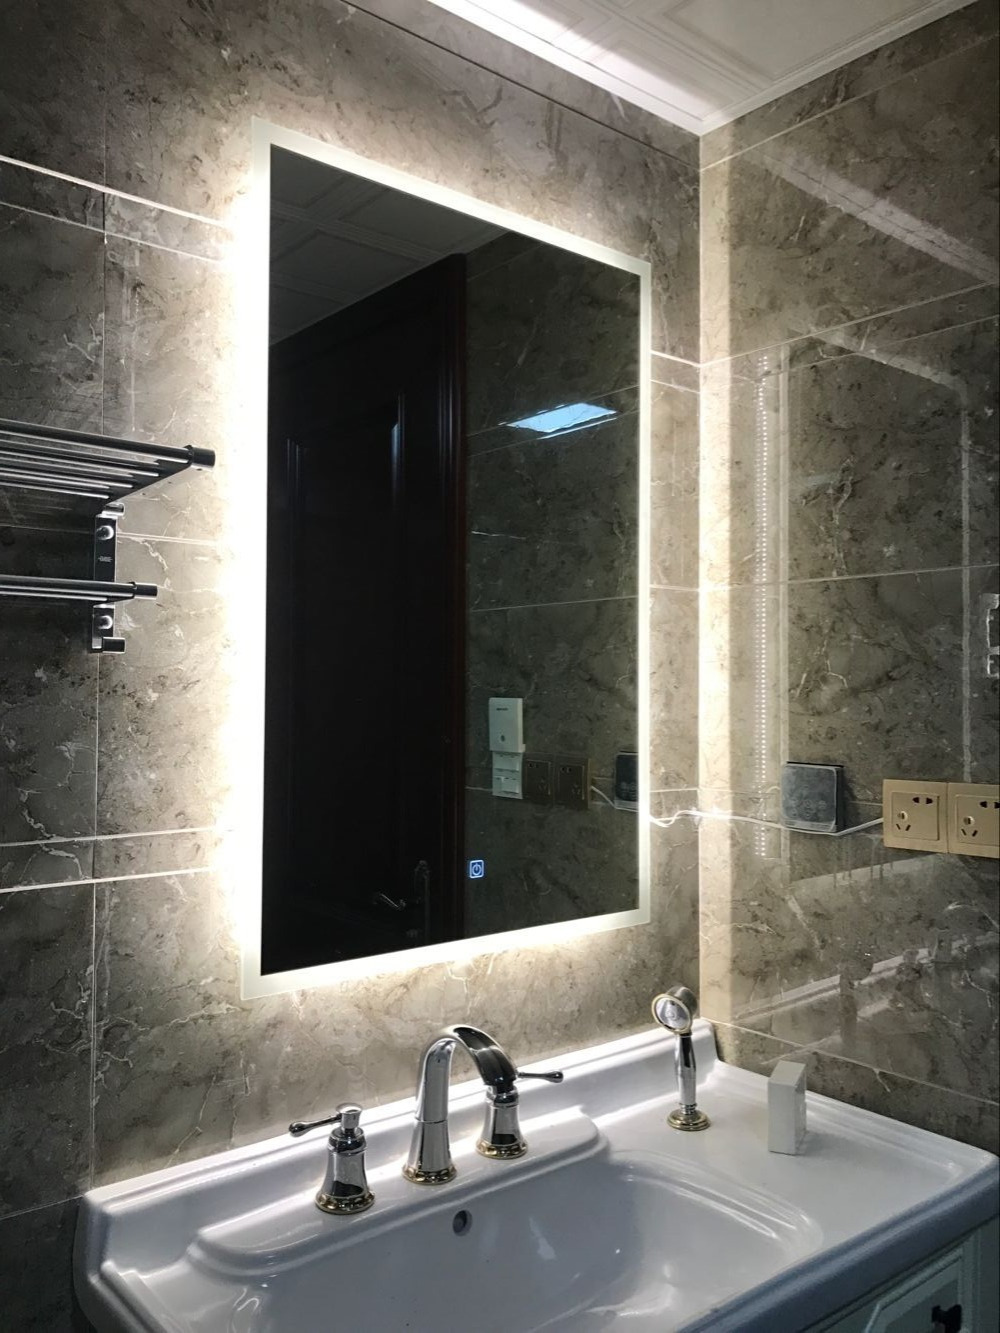 DIYHD Box Diffusers Led Backlit Bathroom Mirror Vanity Square Wall ...